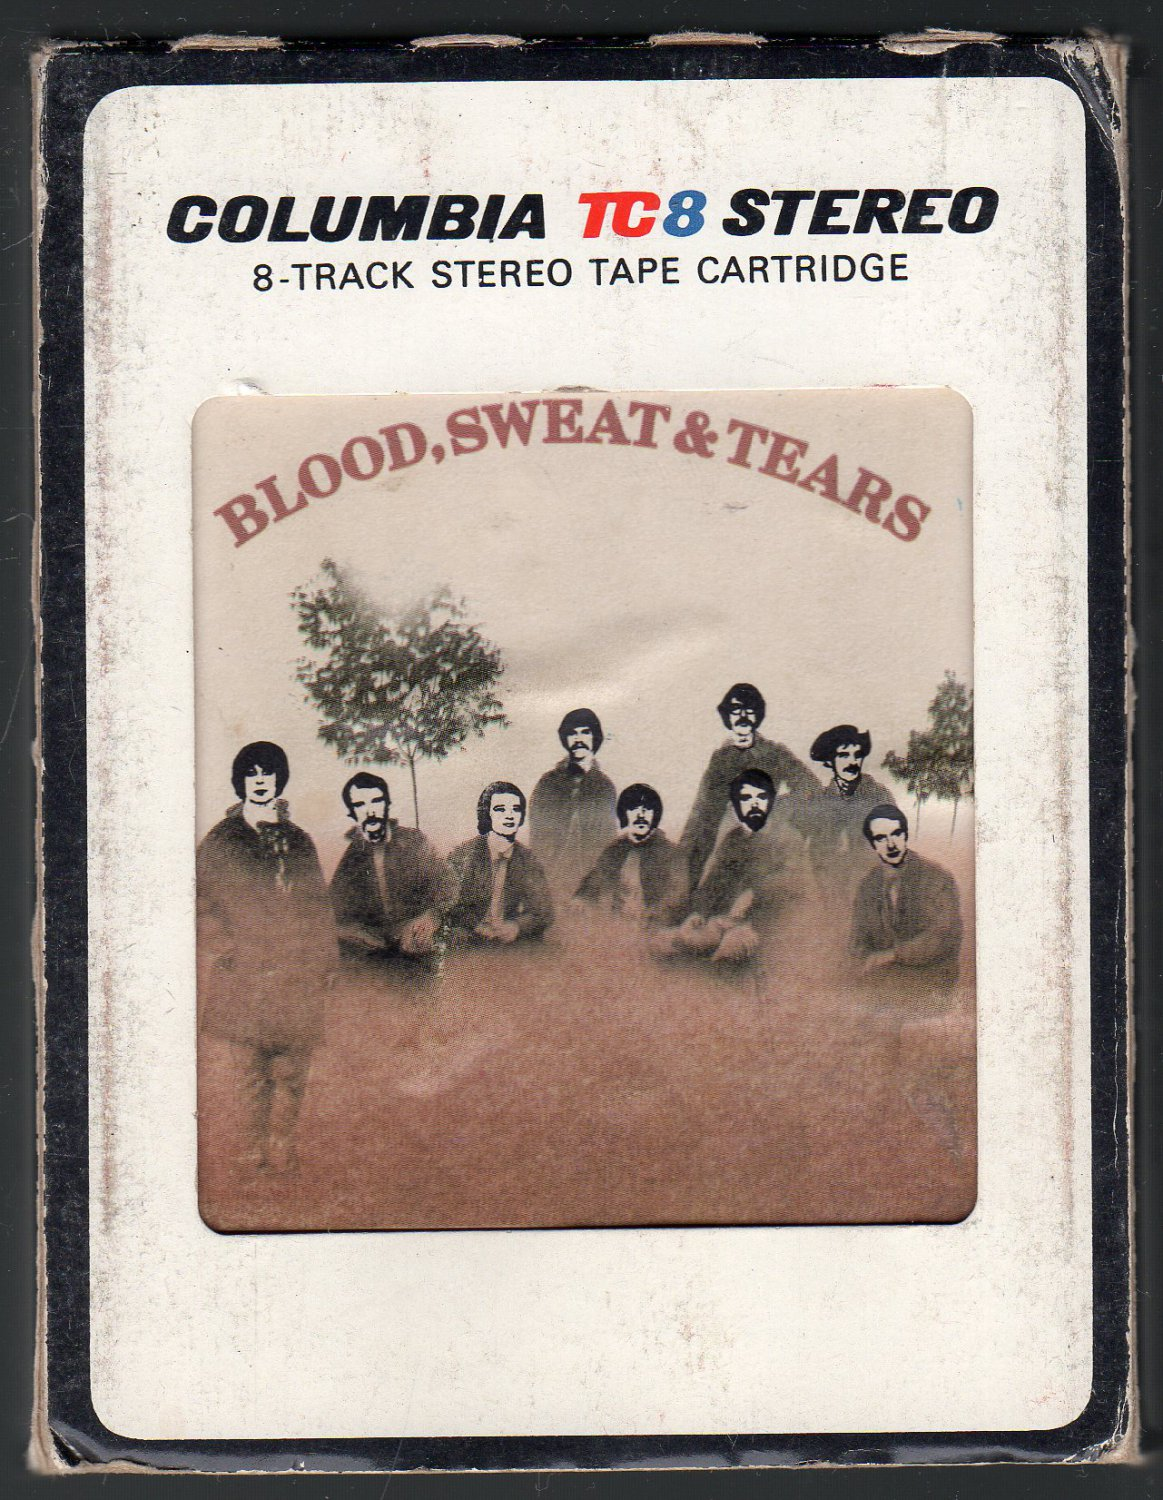 Blood, Sweat & Tears - Blood, Sweat & Tears 1968 CBS A36 8-TRACK TAPE